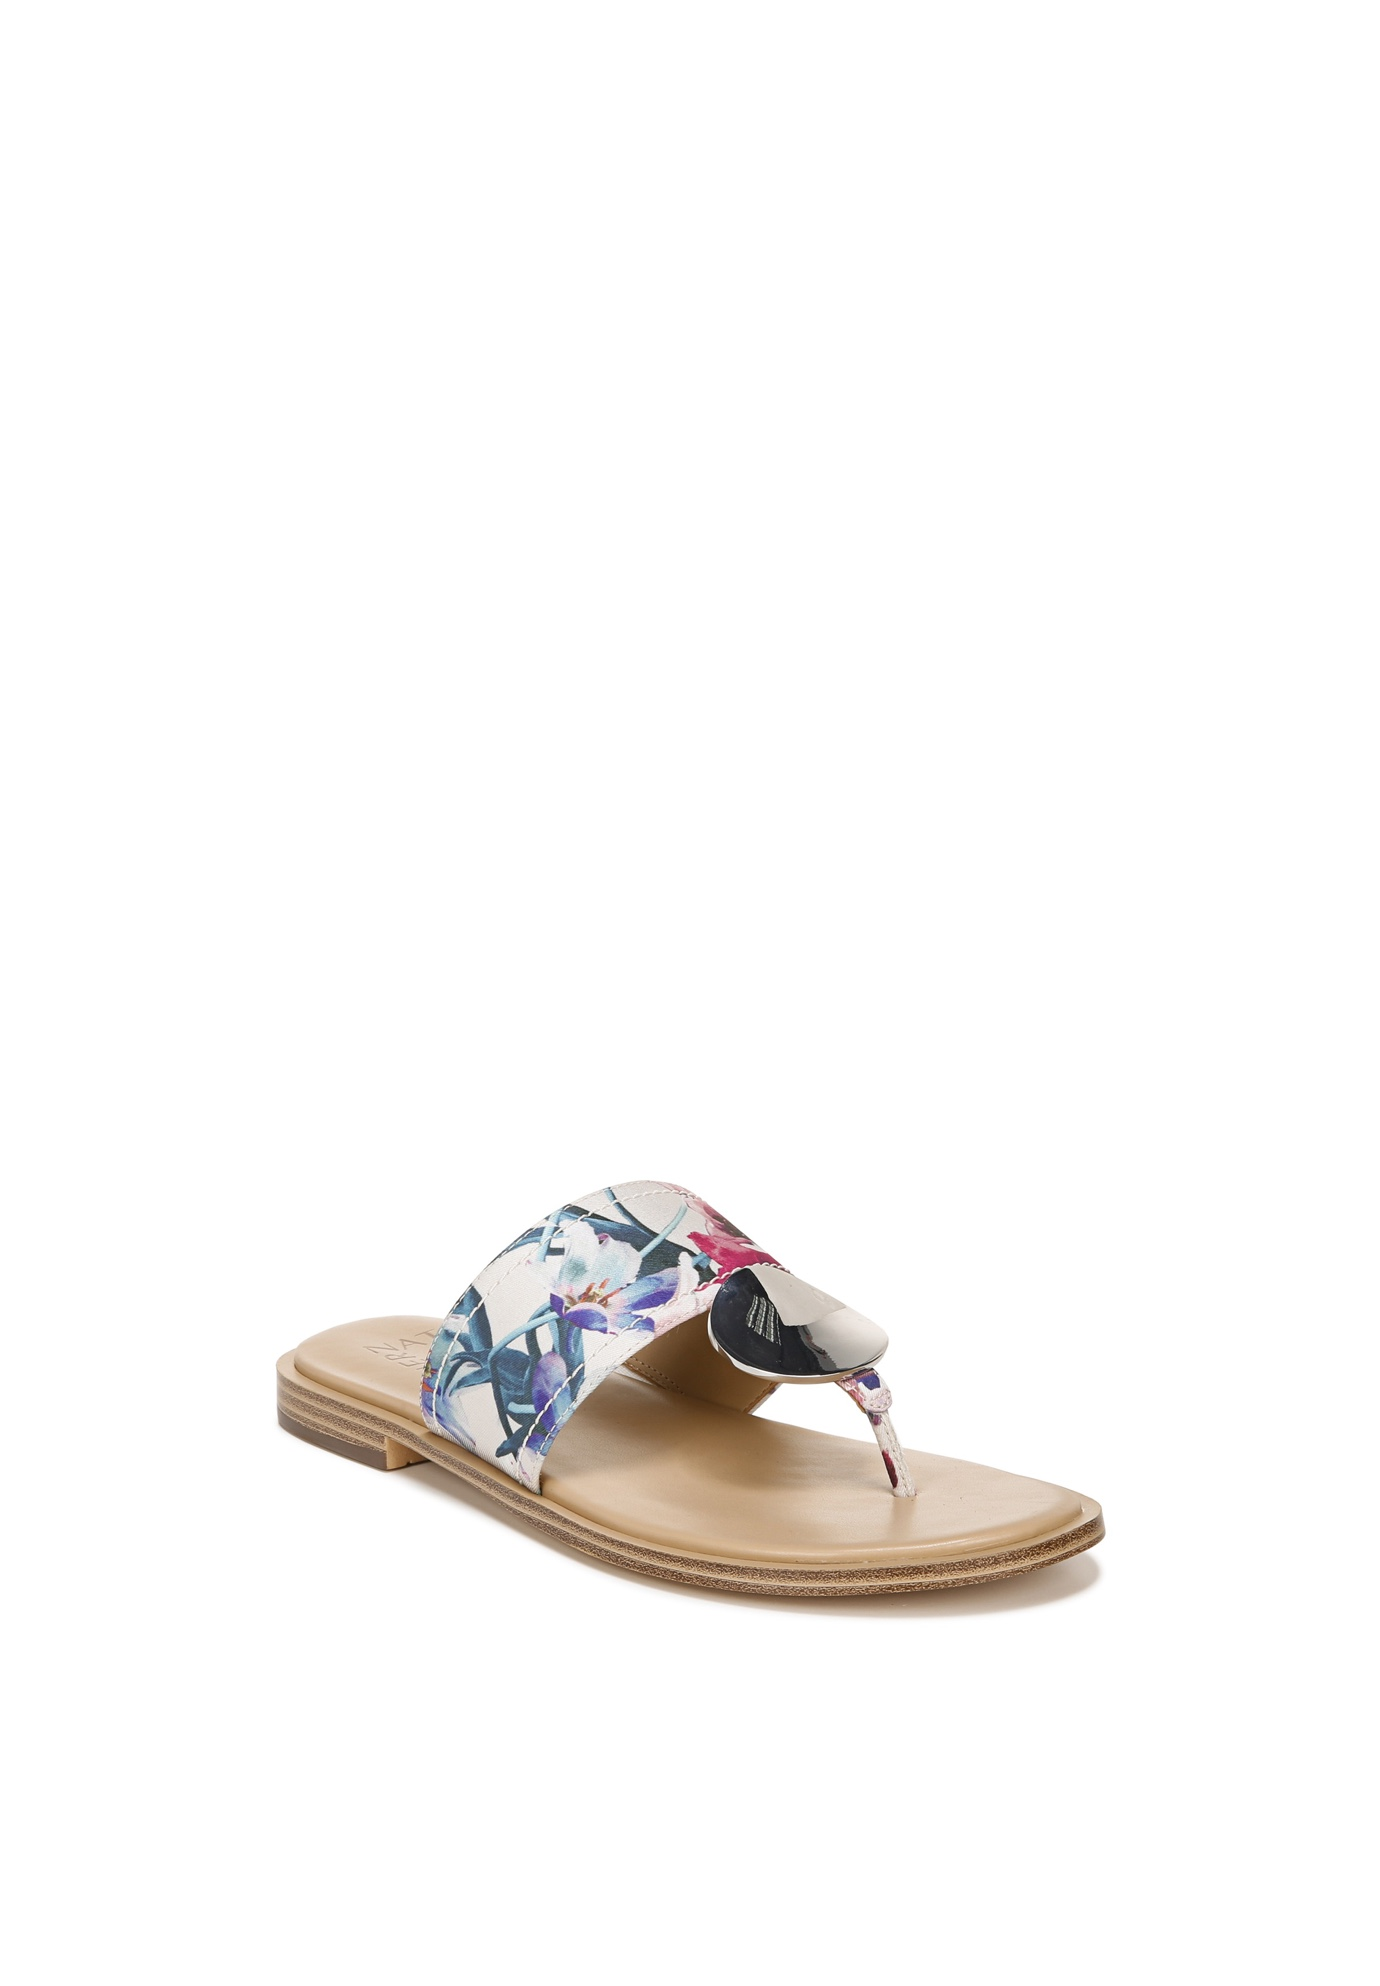 Frankie Sandal by Naturalizer,